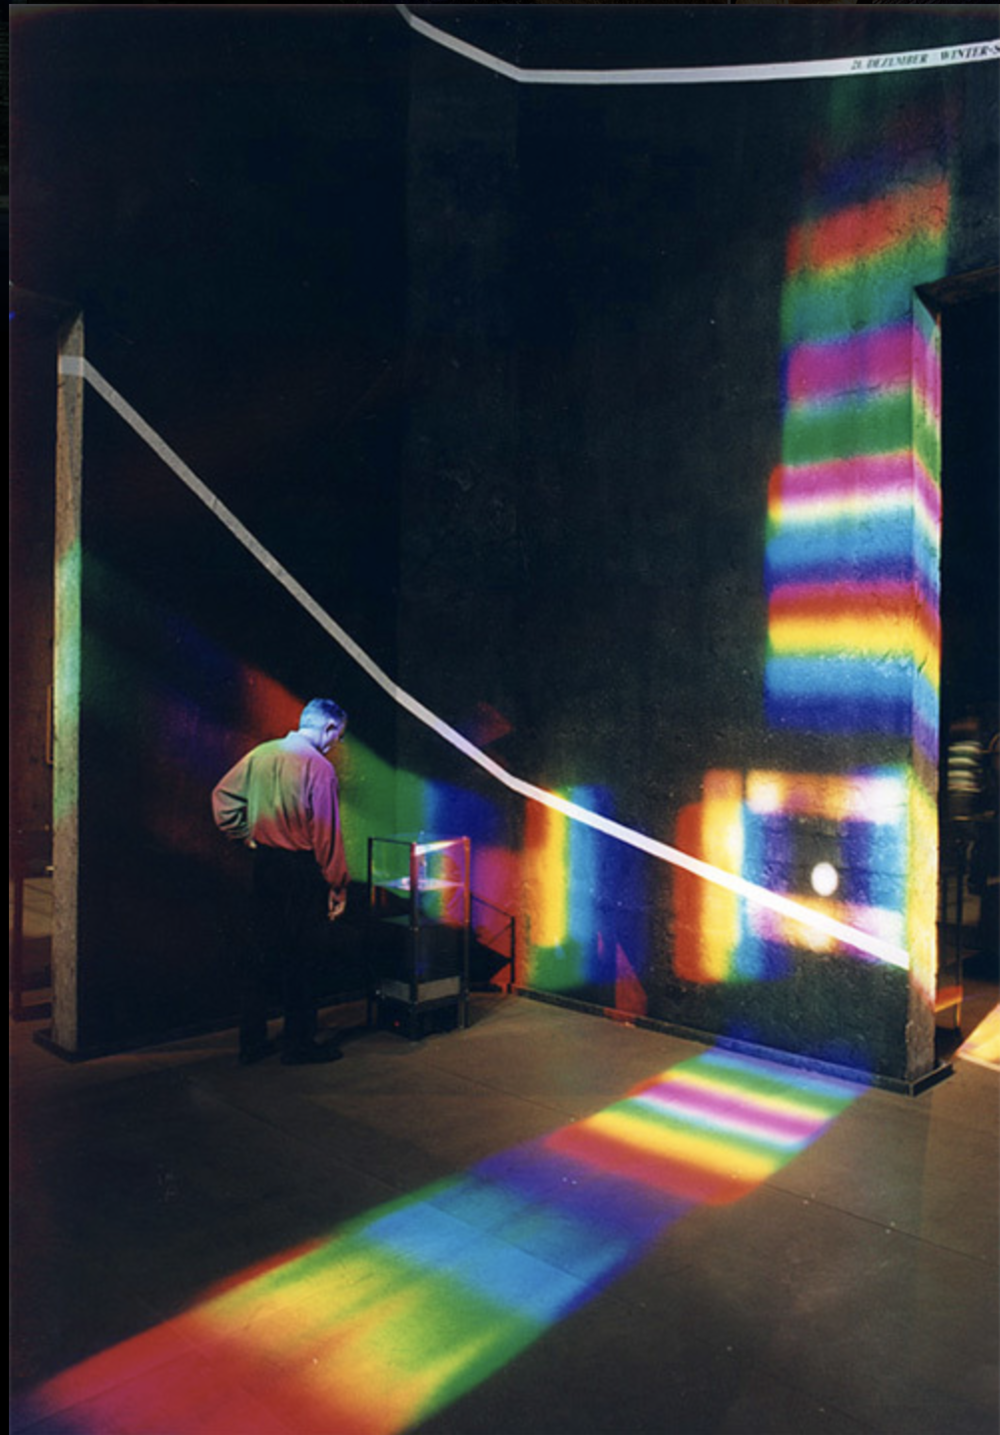 PETER ERSKINE - COLOUR SPECTRUM /ARCHITECTURAL ARTIST